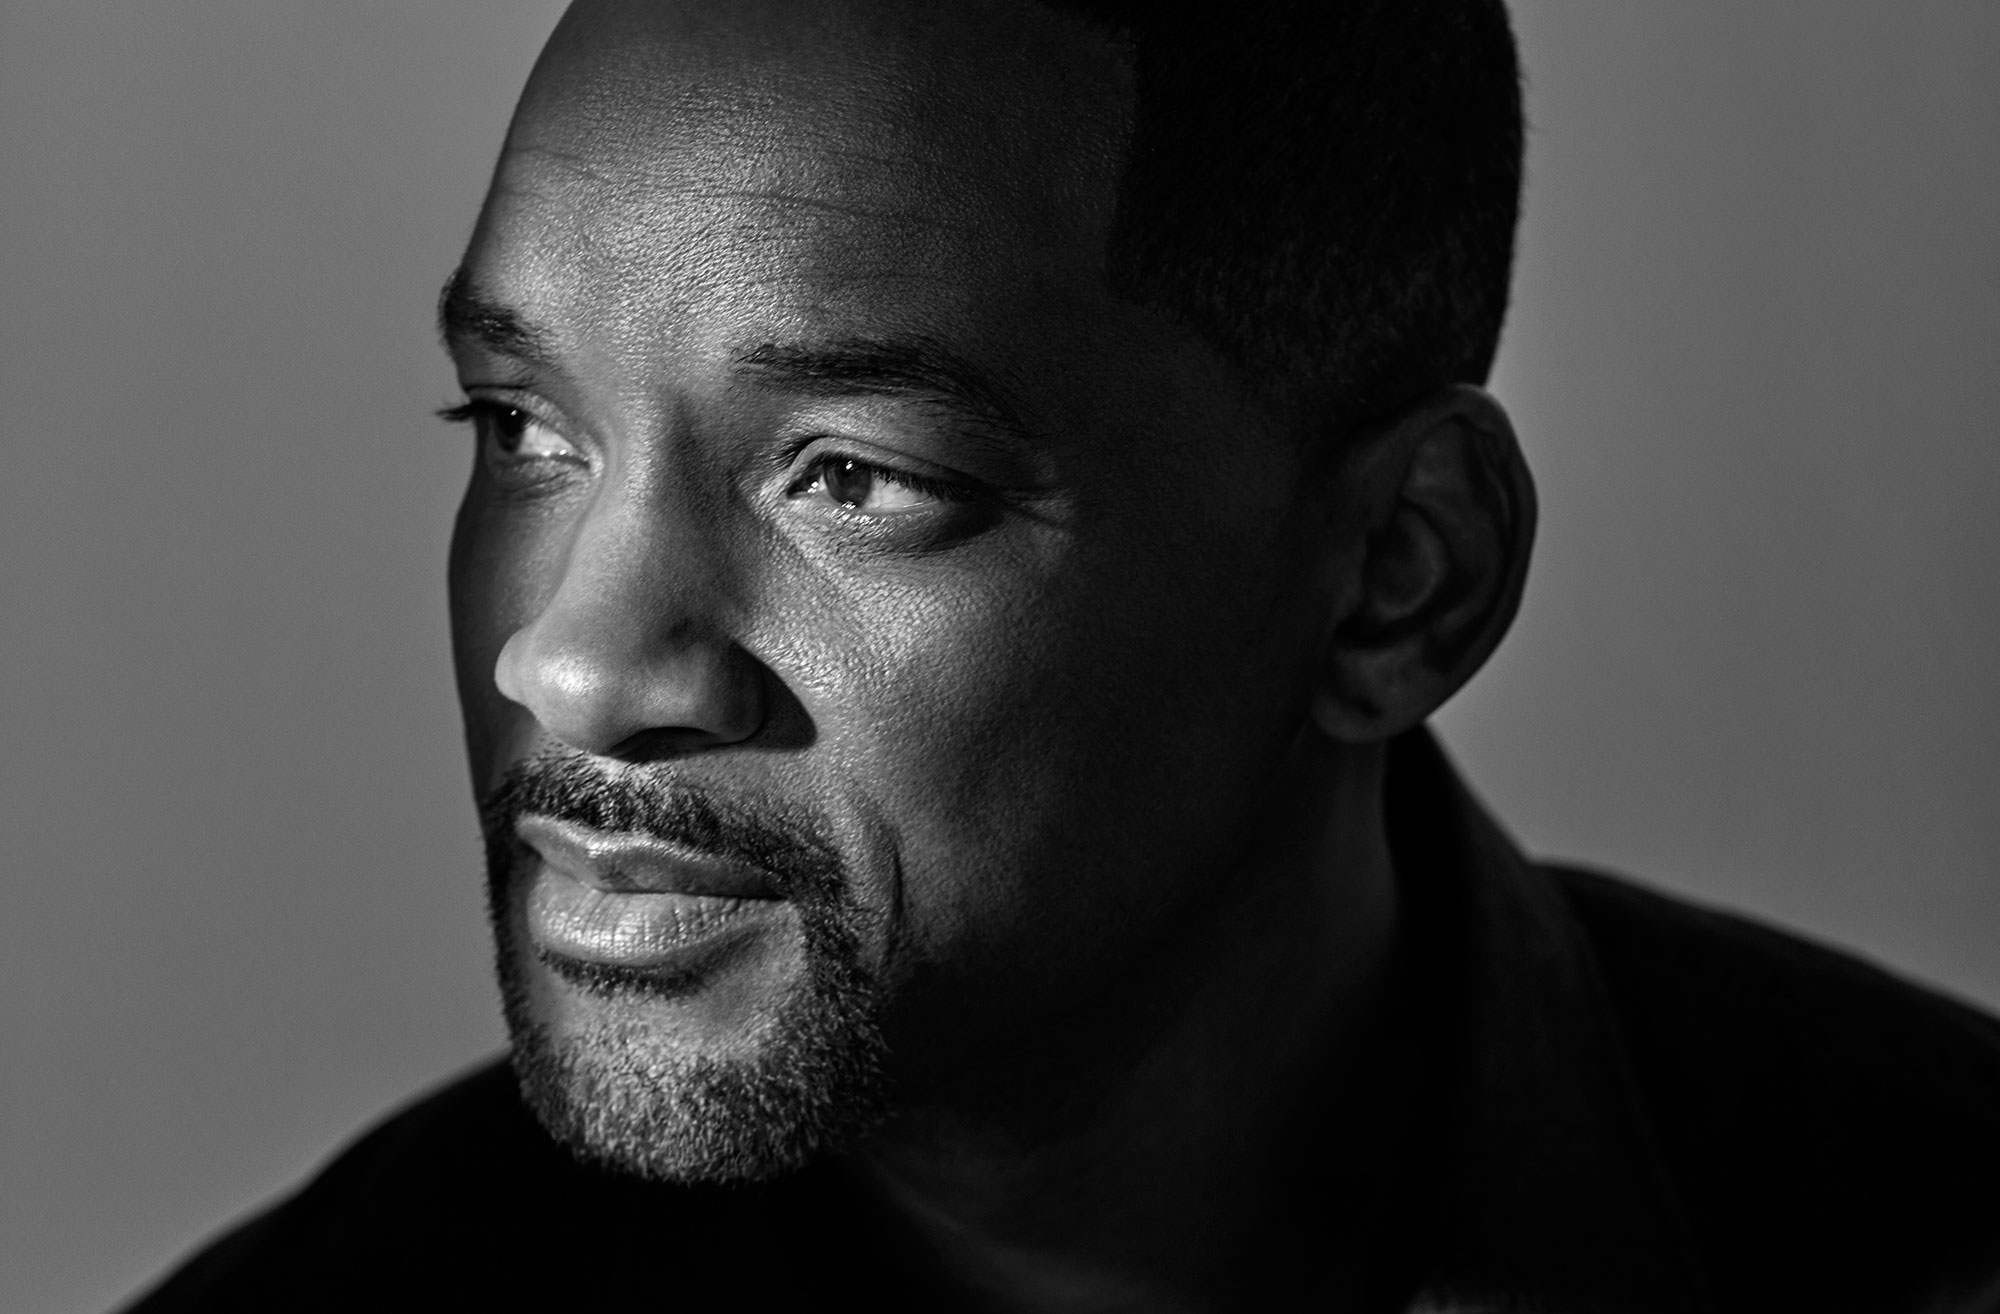 Will Smith by Lorenzo Agius  50*60 cm Ed 25  75*100 cm Ed 25  100*120 cm Ed 15  Prices from 3000 pund